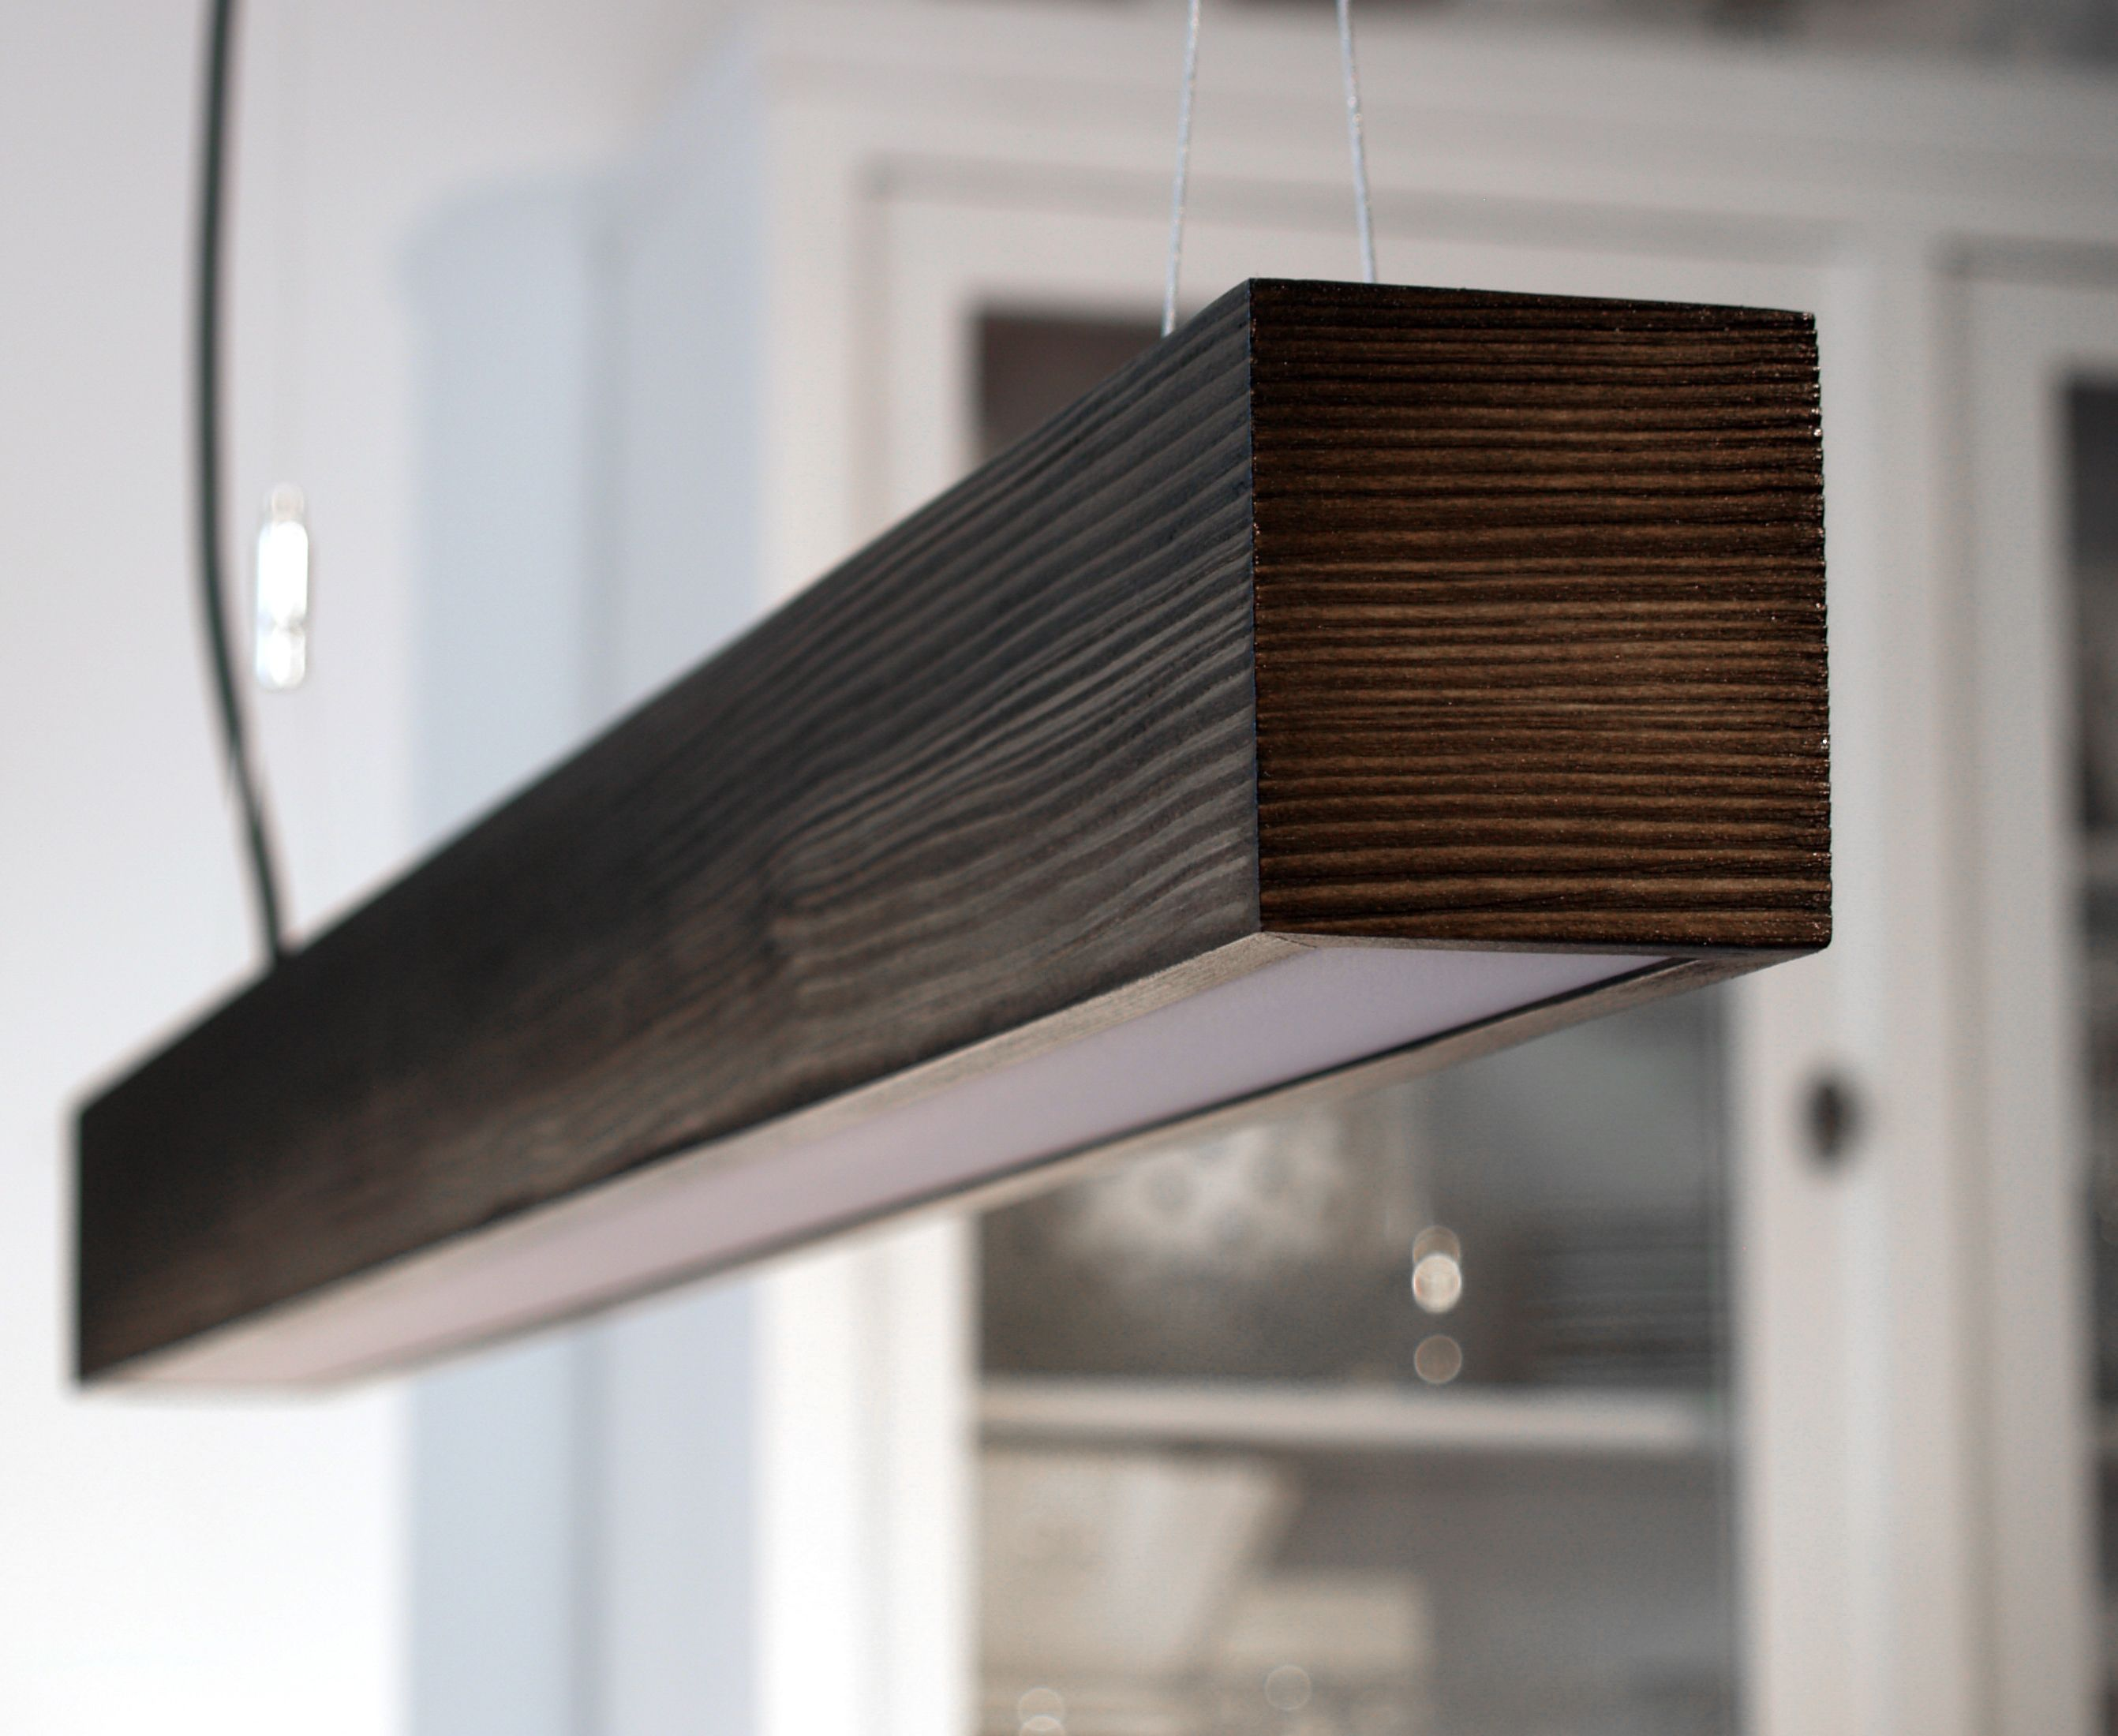 Pendelleuchte Aus Massivem Holz Design The Rough Www Lignalux Com Led Pendant Light Made Of Lampara De Escritorio Muebles Hierro Y Madera Muebles De Hierro